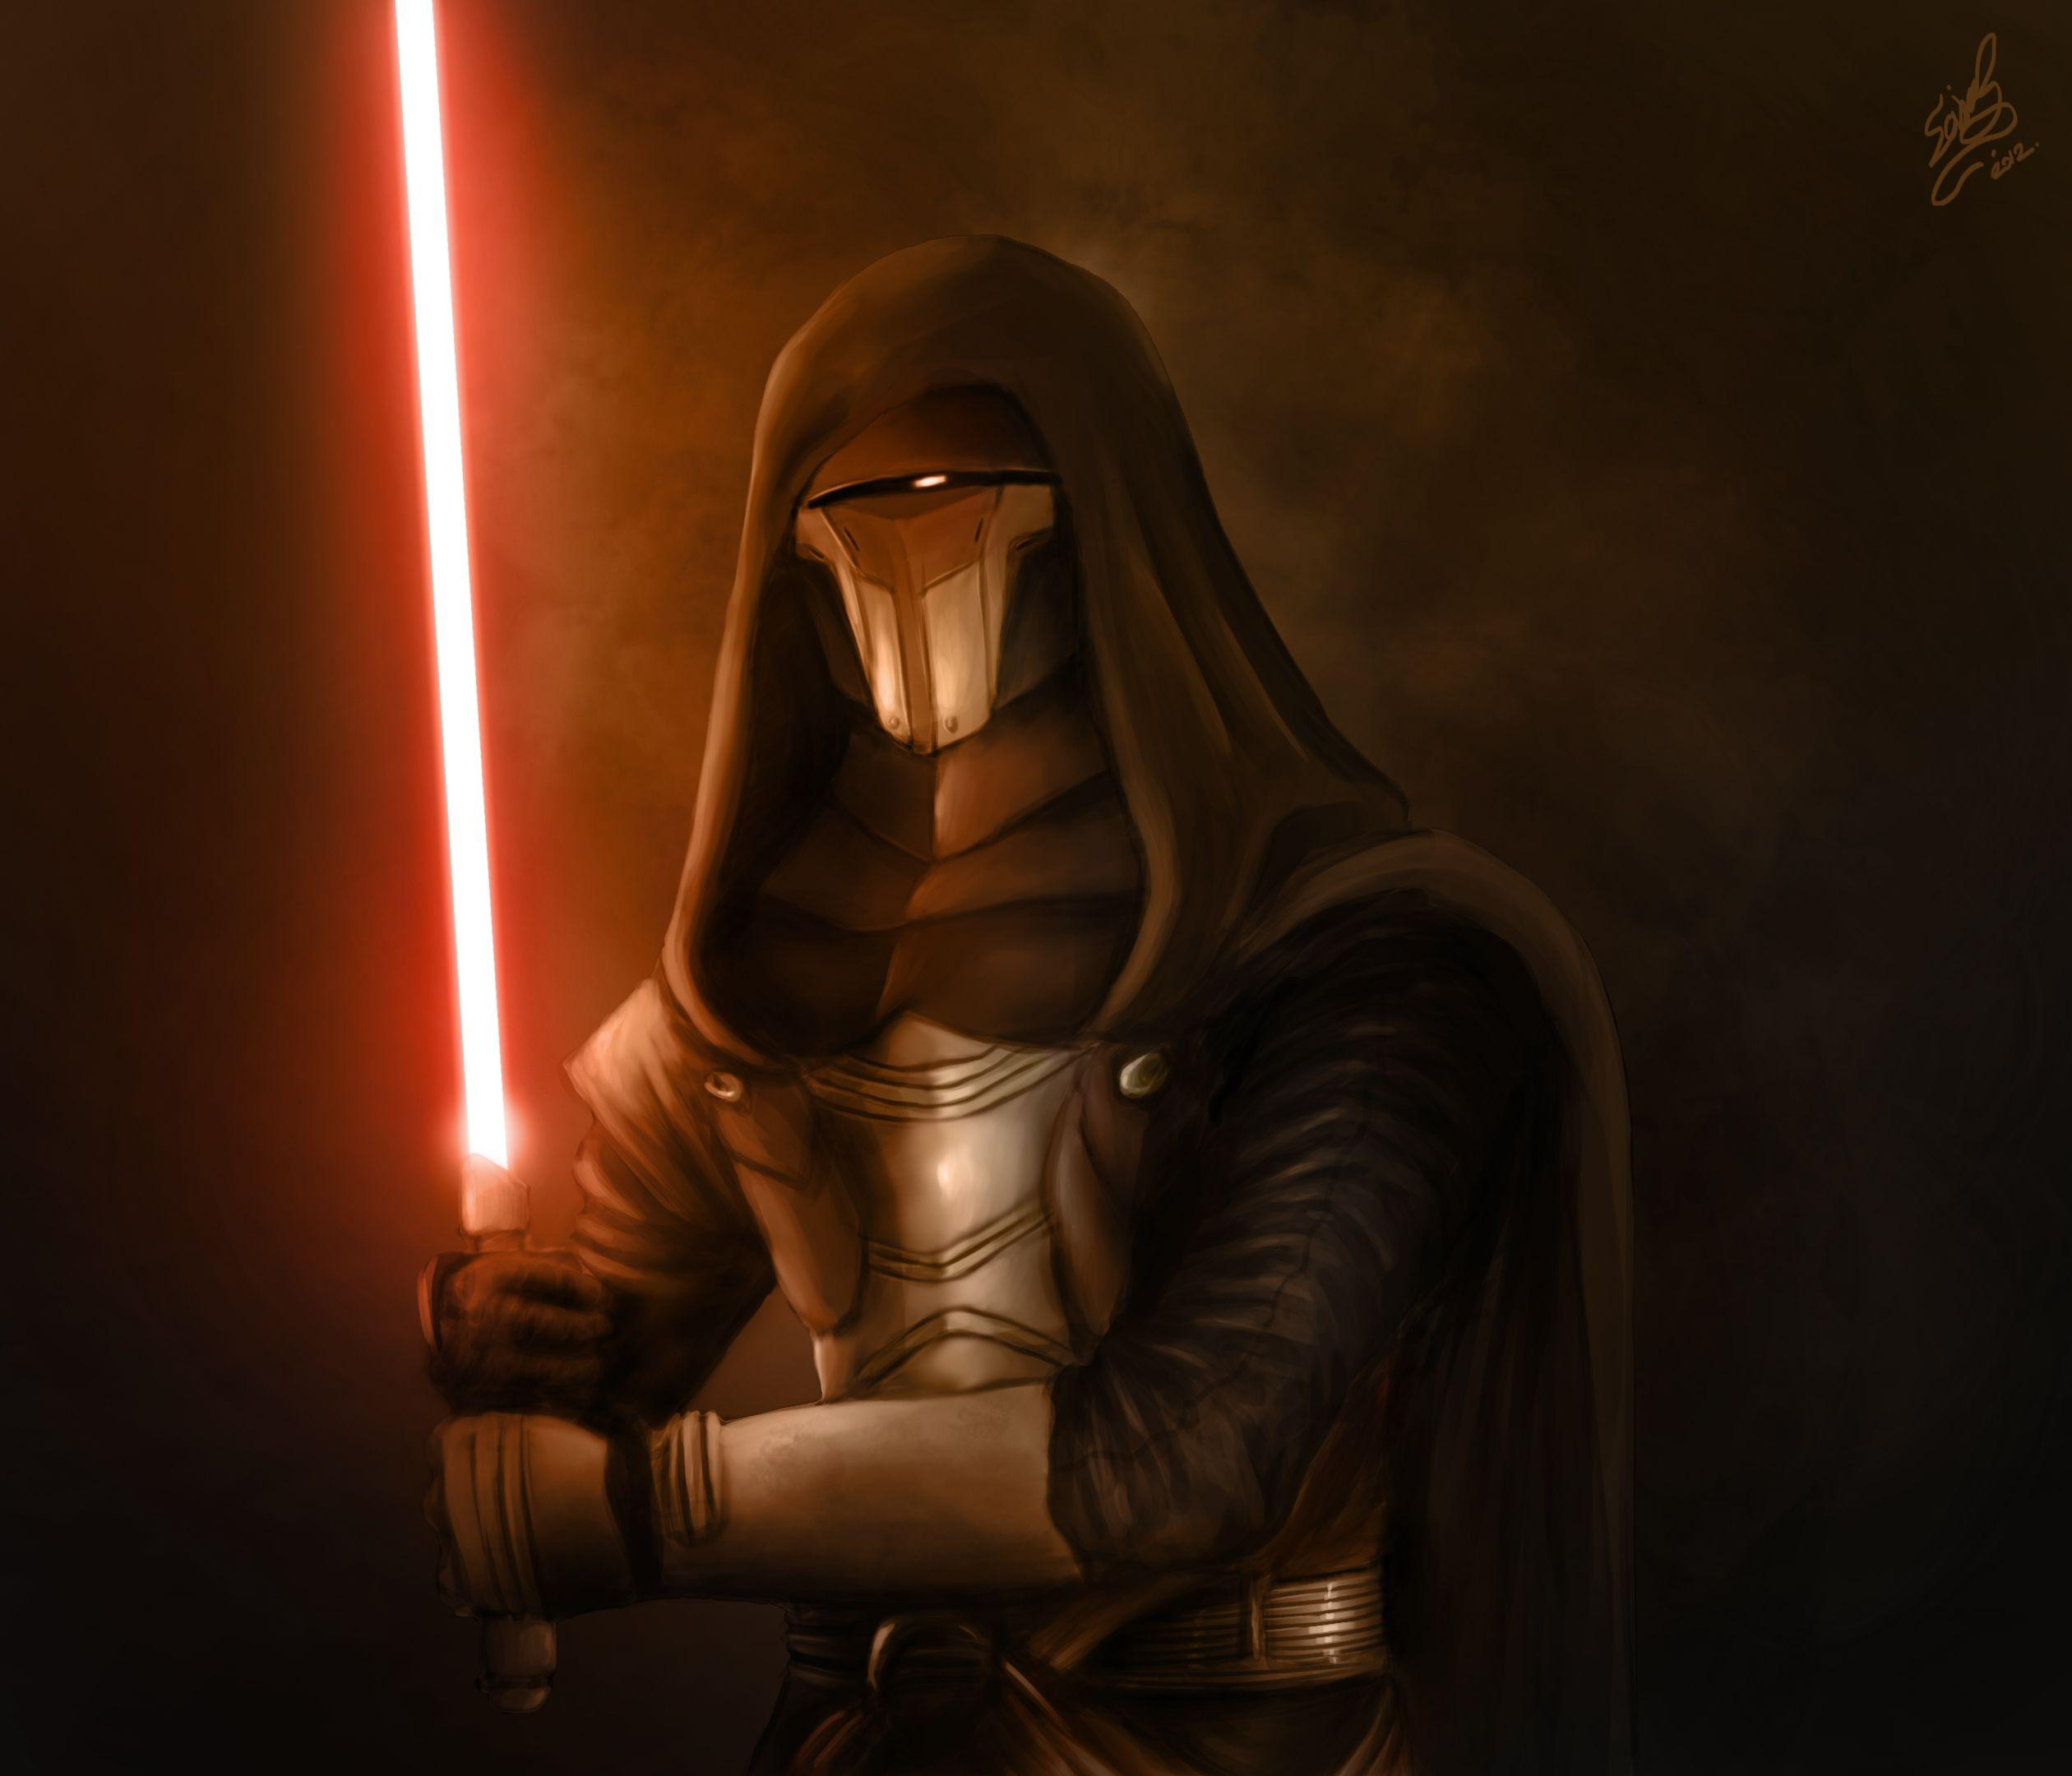 darth revan wallpaper images (25) - HD Wallpapers Buzz